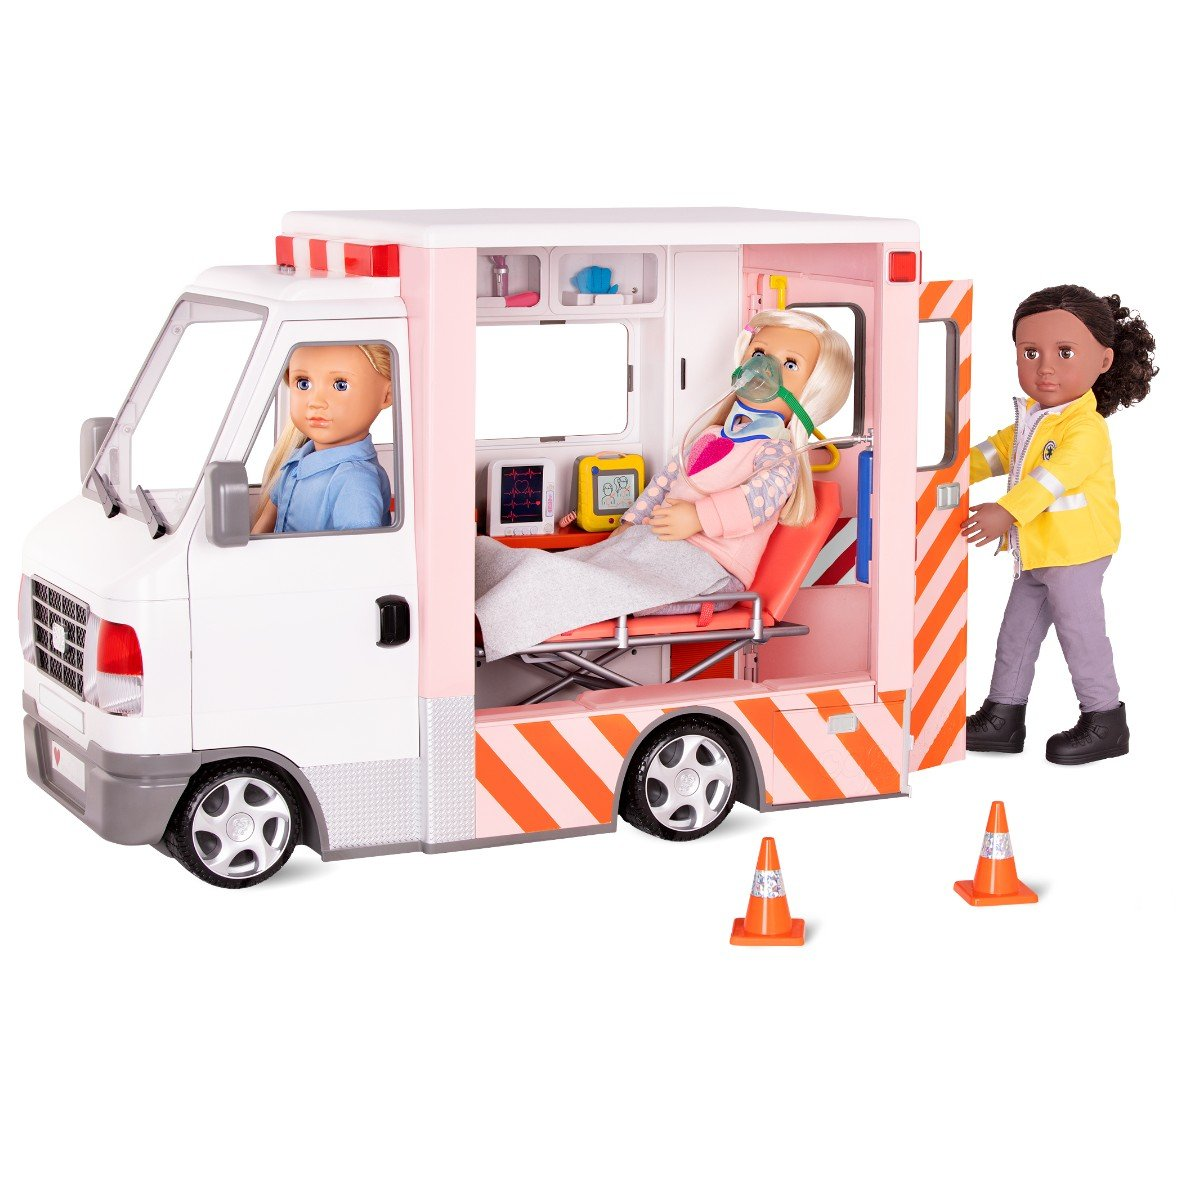 Our Generation - Rescue Ambulance (737959)